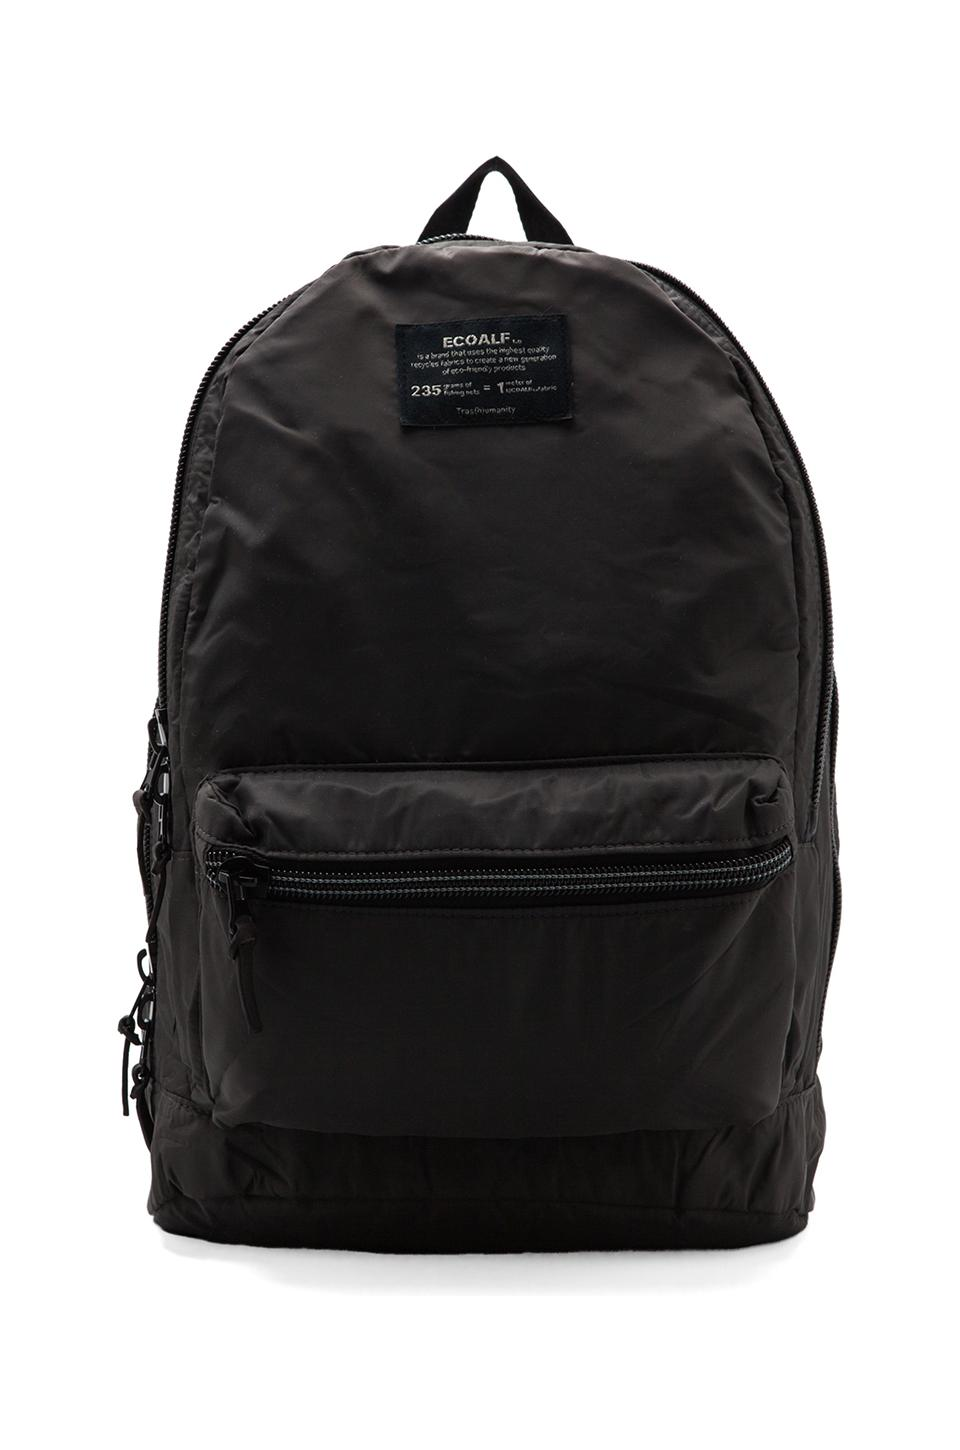 ECOALF Munich Backpack in Anthracite